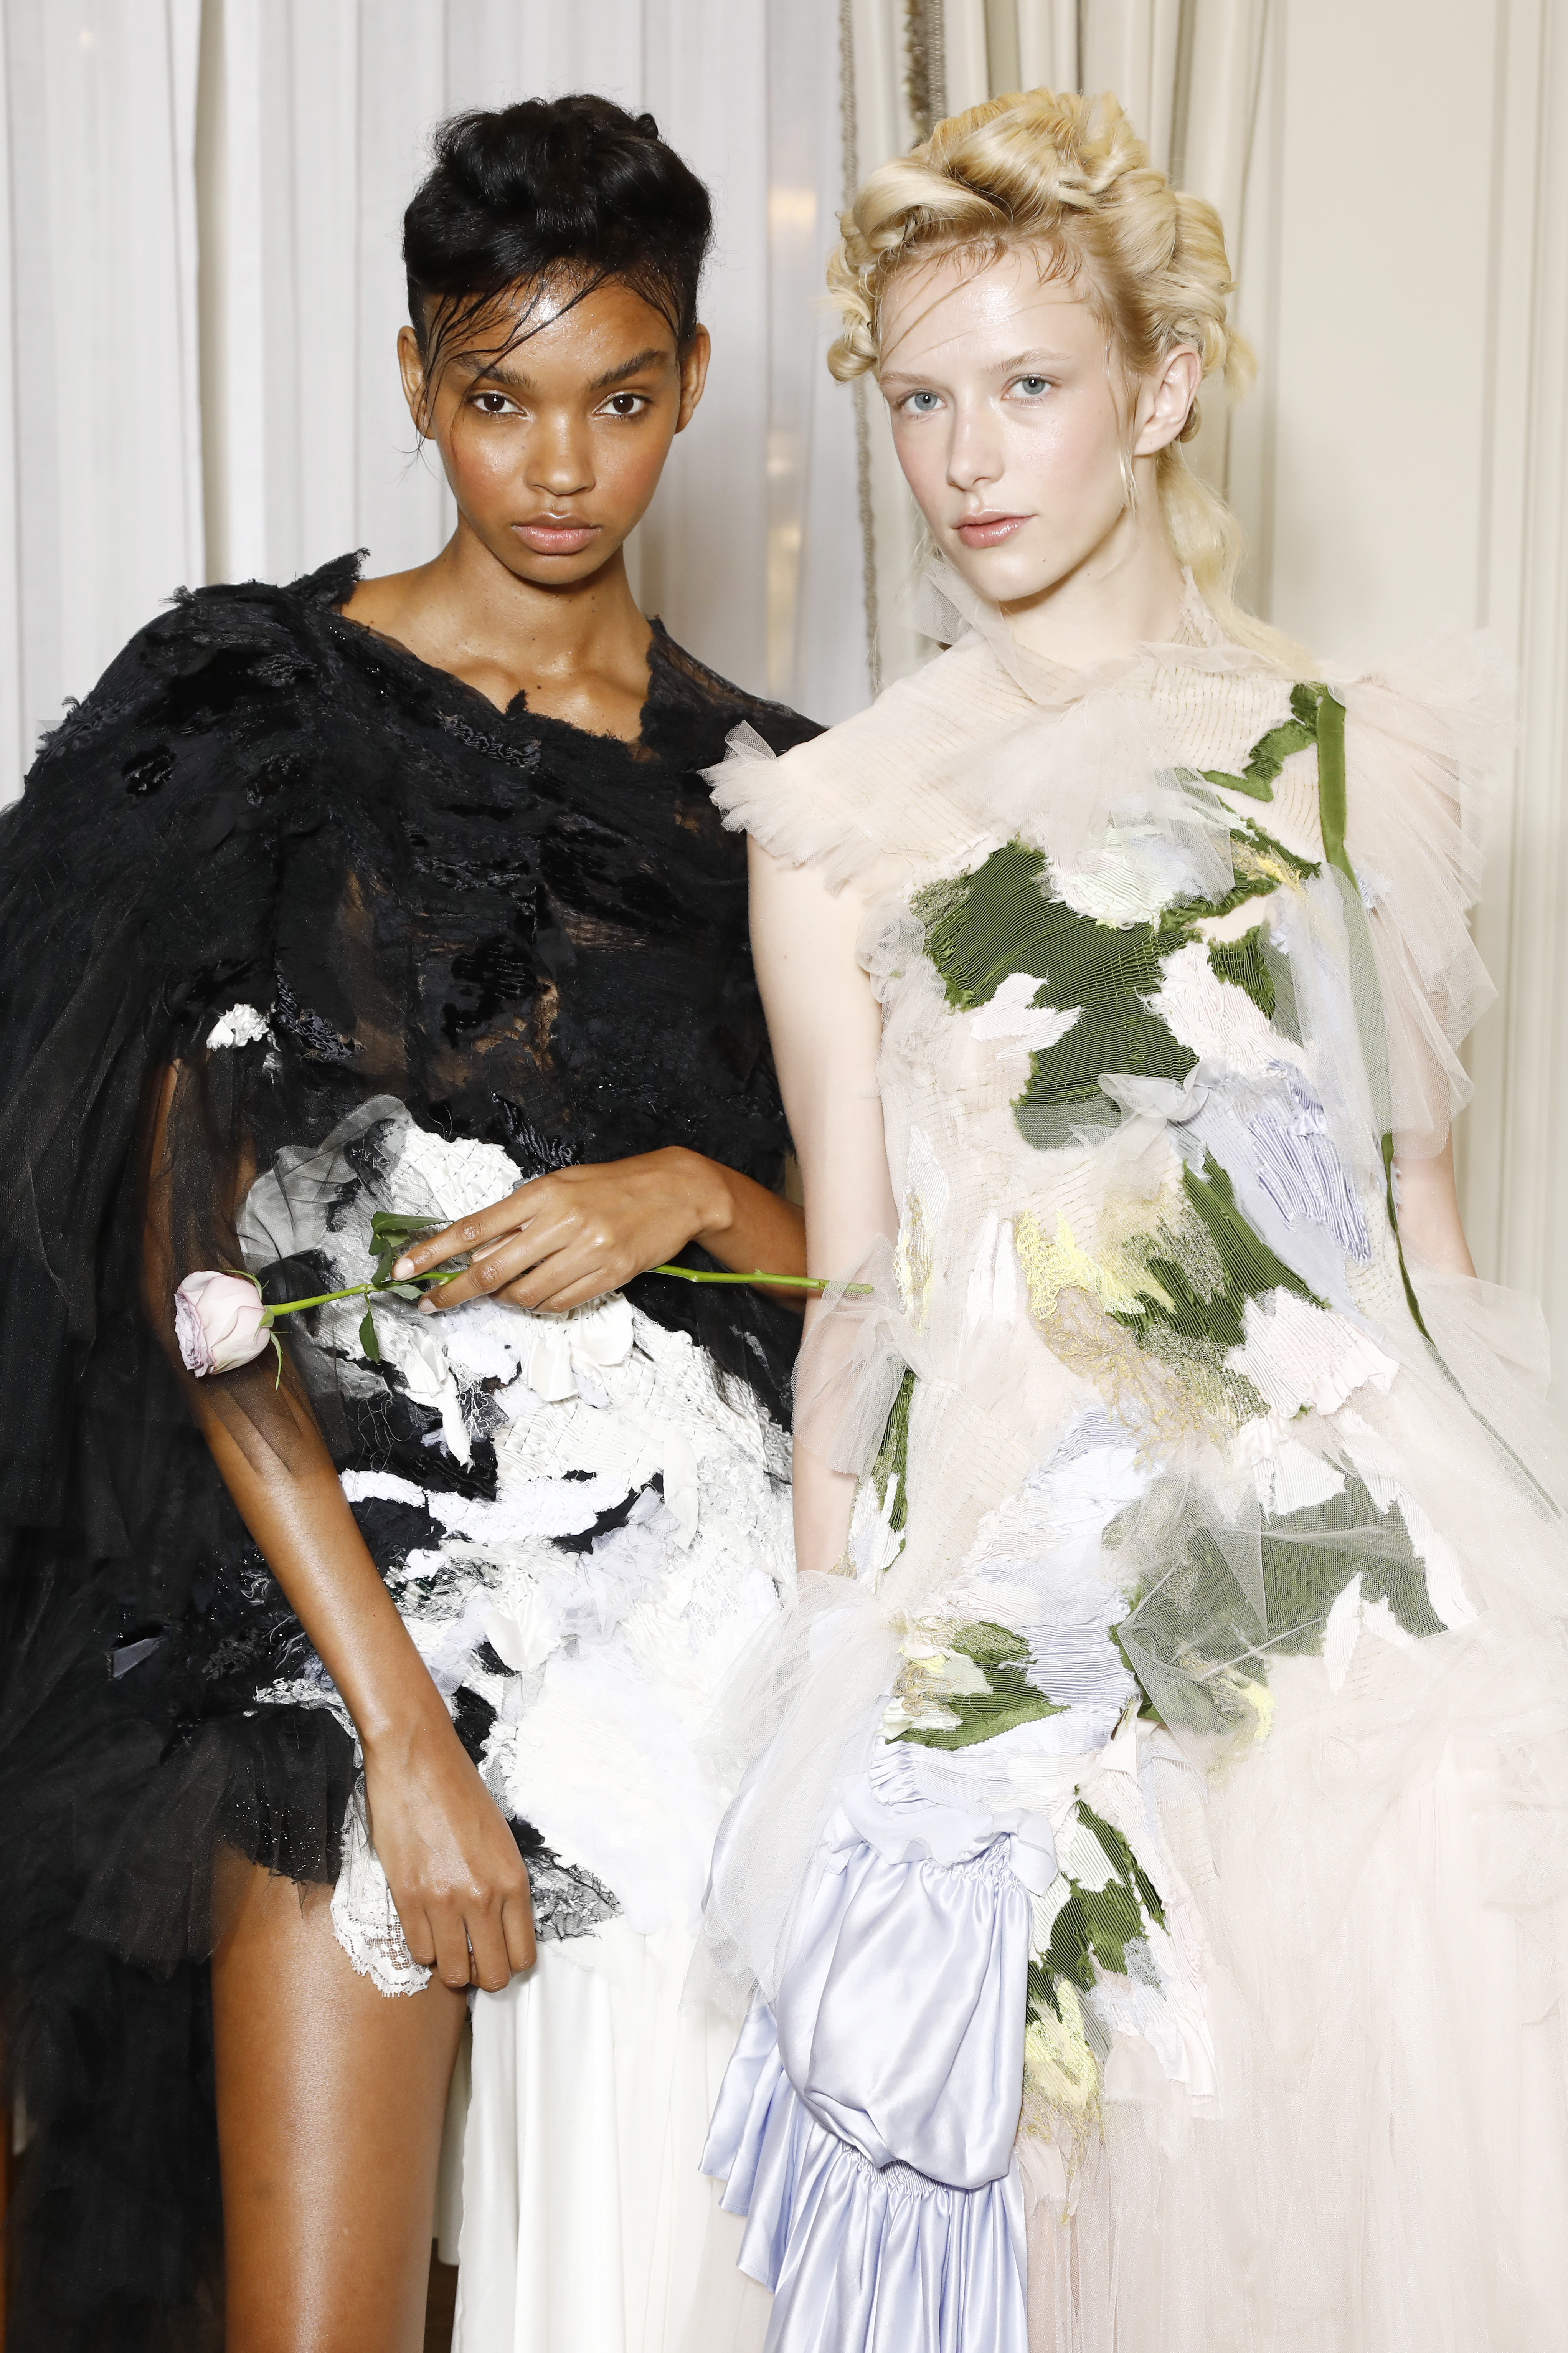 PARIS, FRANCE - JULY 03: Models are seen at the  intimate presentation and cocktail in celebration of BoF China Prize 2018 winner Caroline Hu on July 3, 2019 at Hôtel Ritz in Paris, France.. (Photo by Julien M. Hekimian/Getty Images for The Business of Fashion)